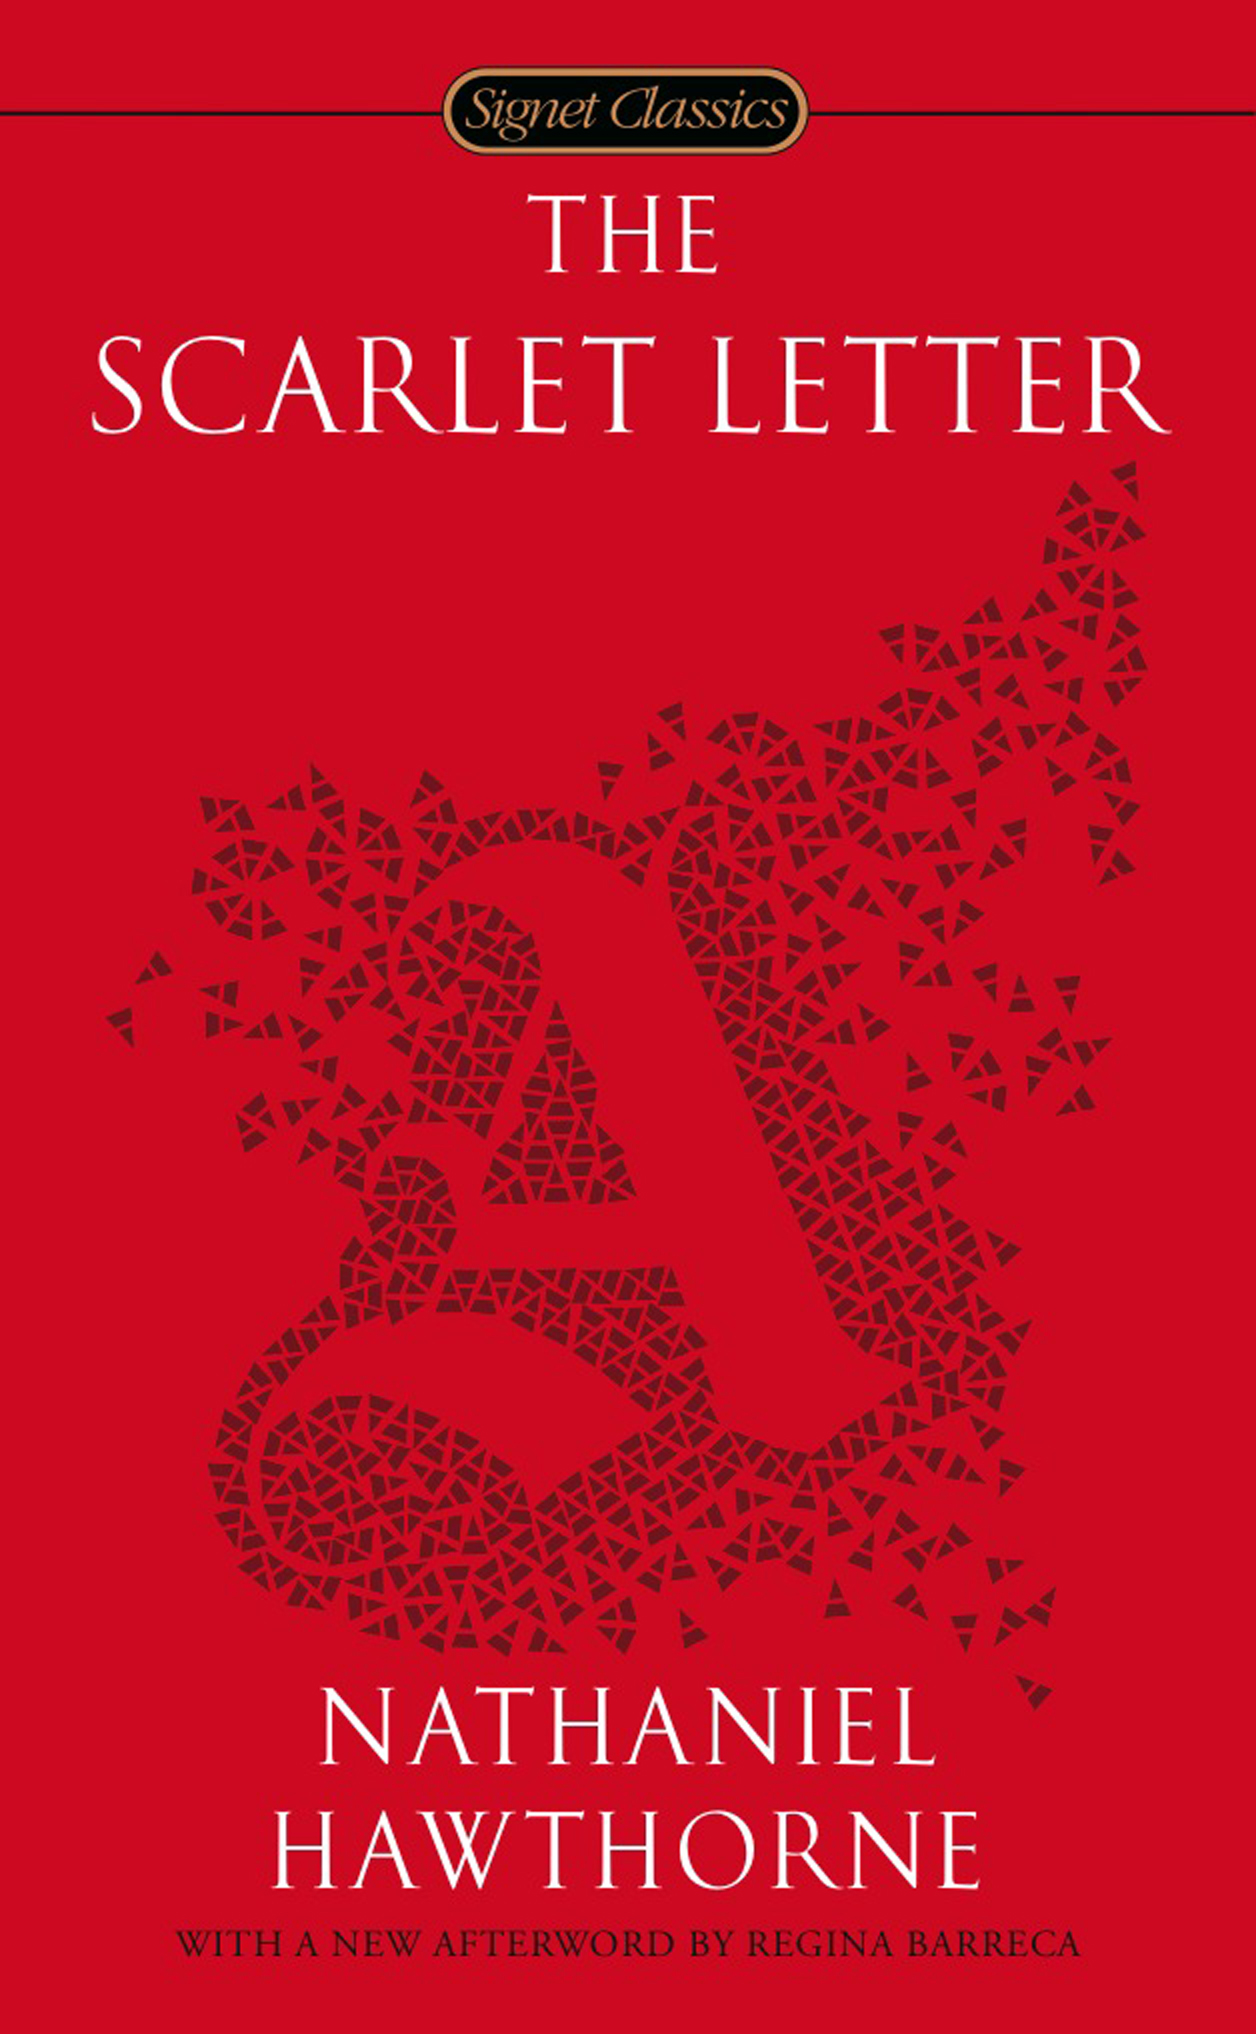 the scarlet letter literary an Within the scarlet letter, hawthorne employs a number of different literary devices including irony, metaphor, and personificationthese devices, and others, occur throughout the text and more information can be found on their respective analysis pages.